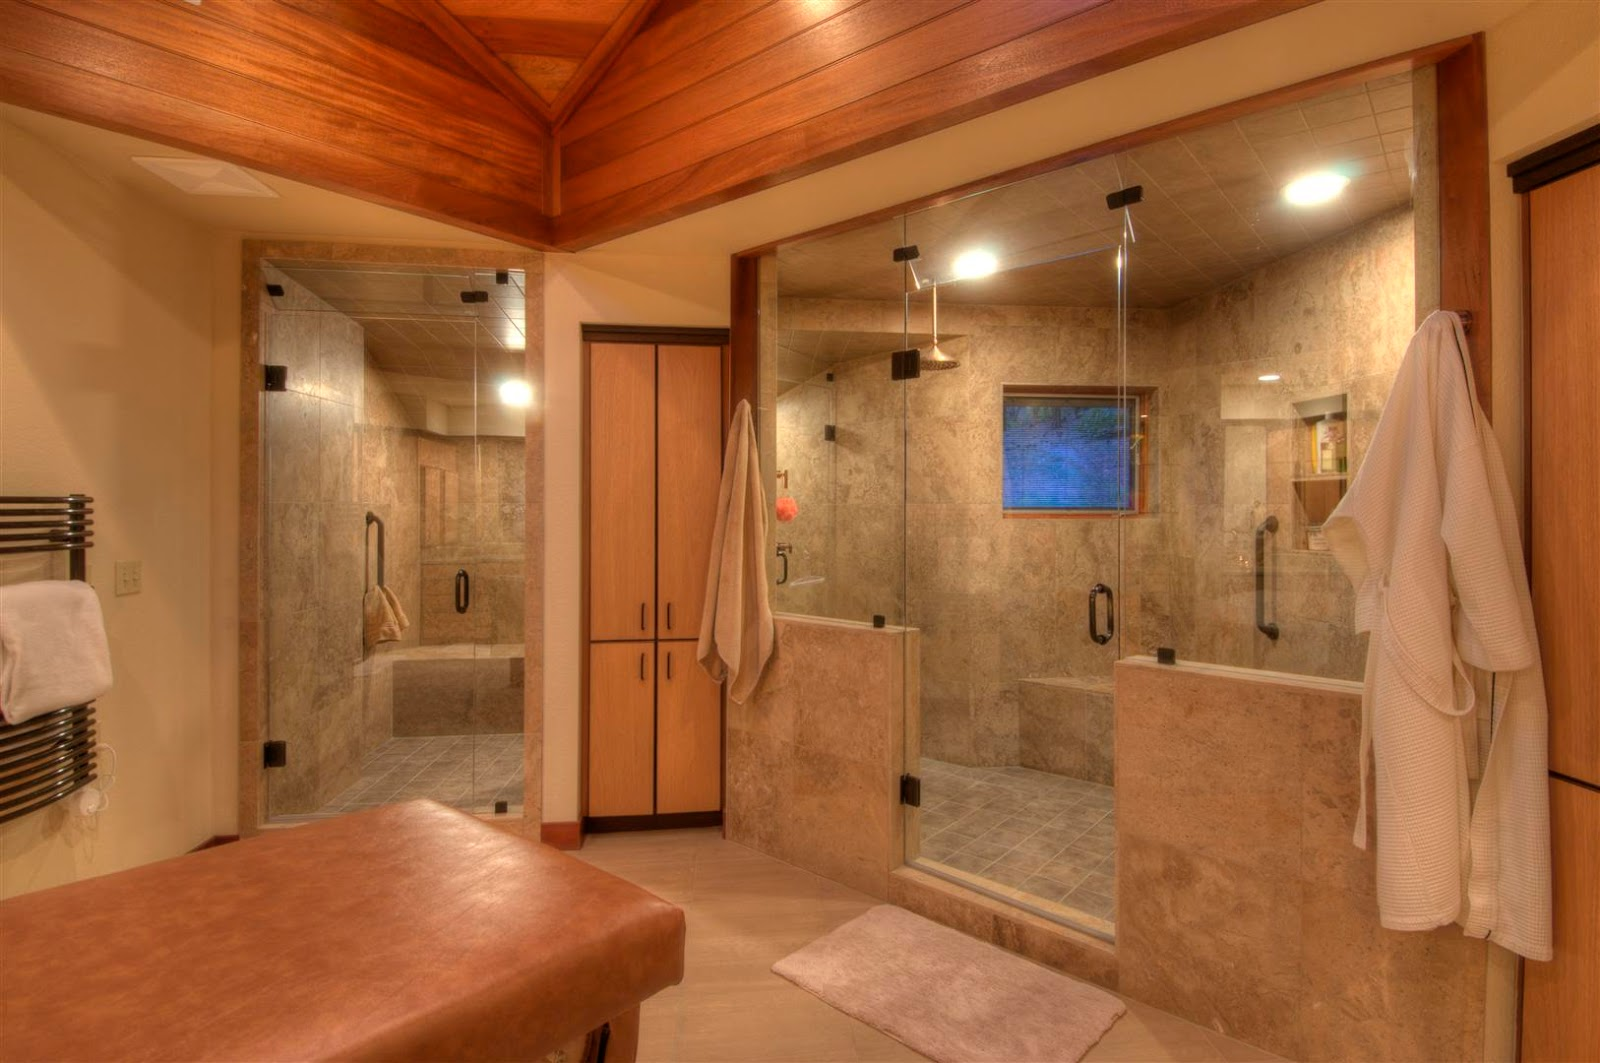 Master Bathroom With Double Glass Walk In Shower With Adorable Wall And Floor! Home Decor